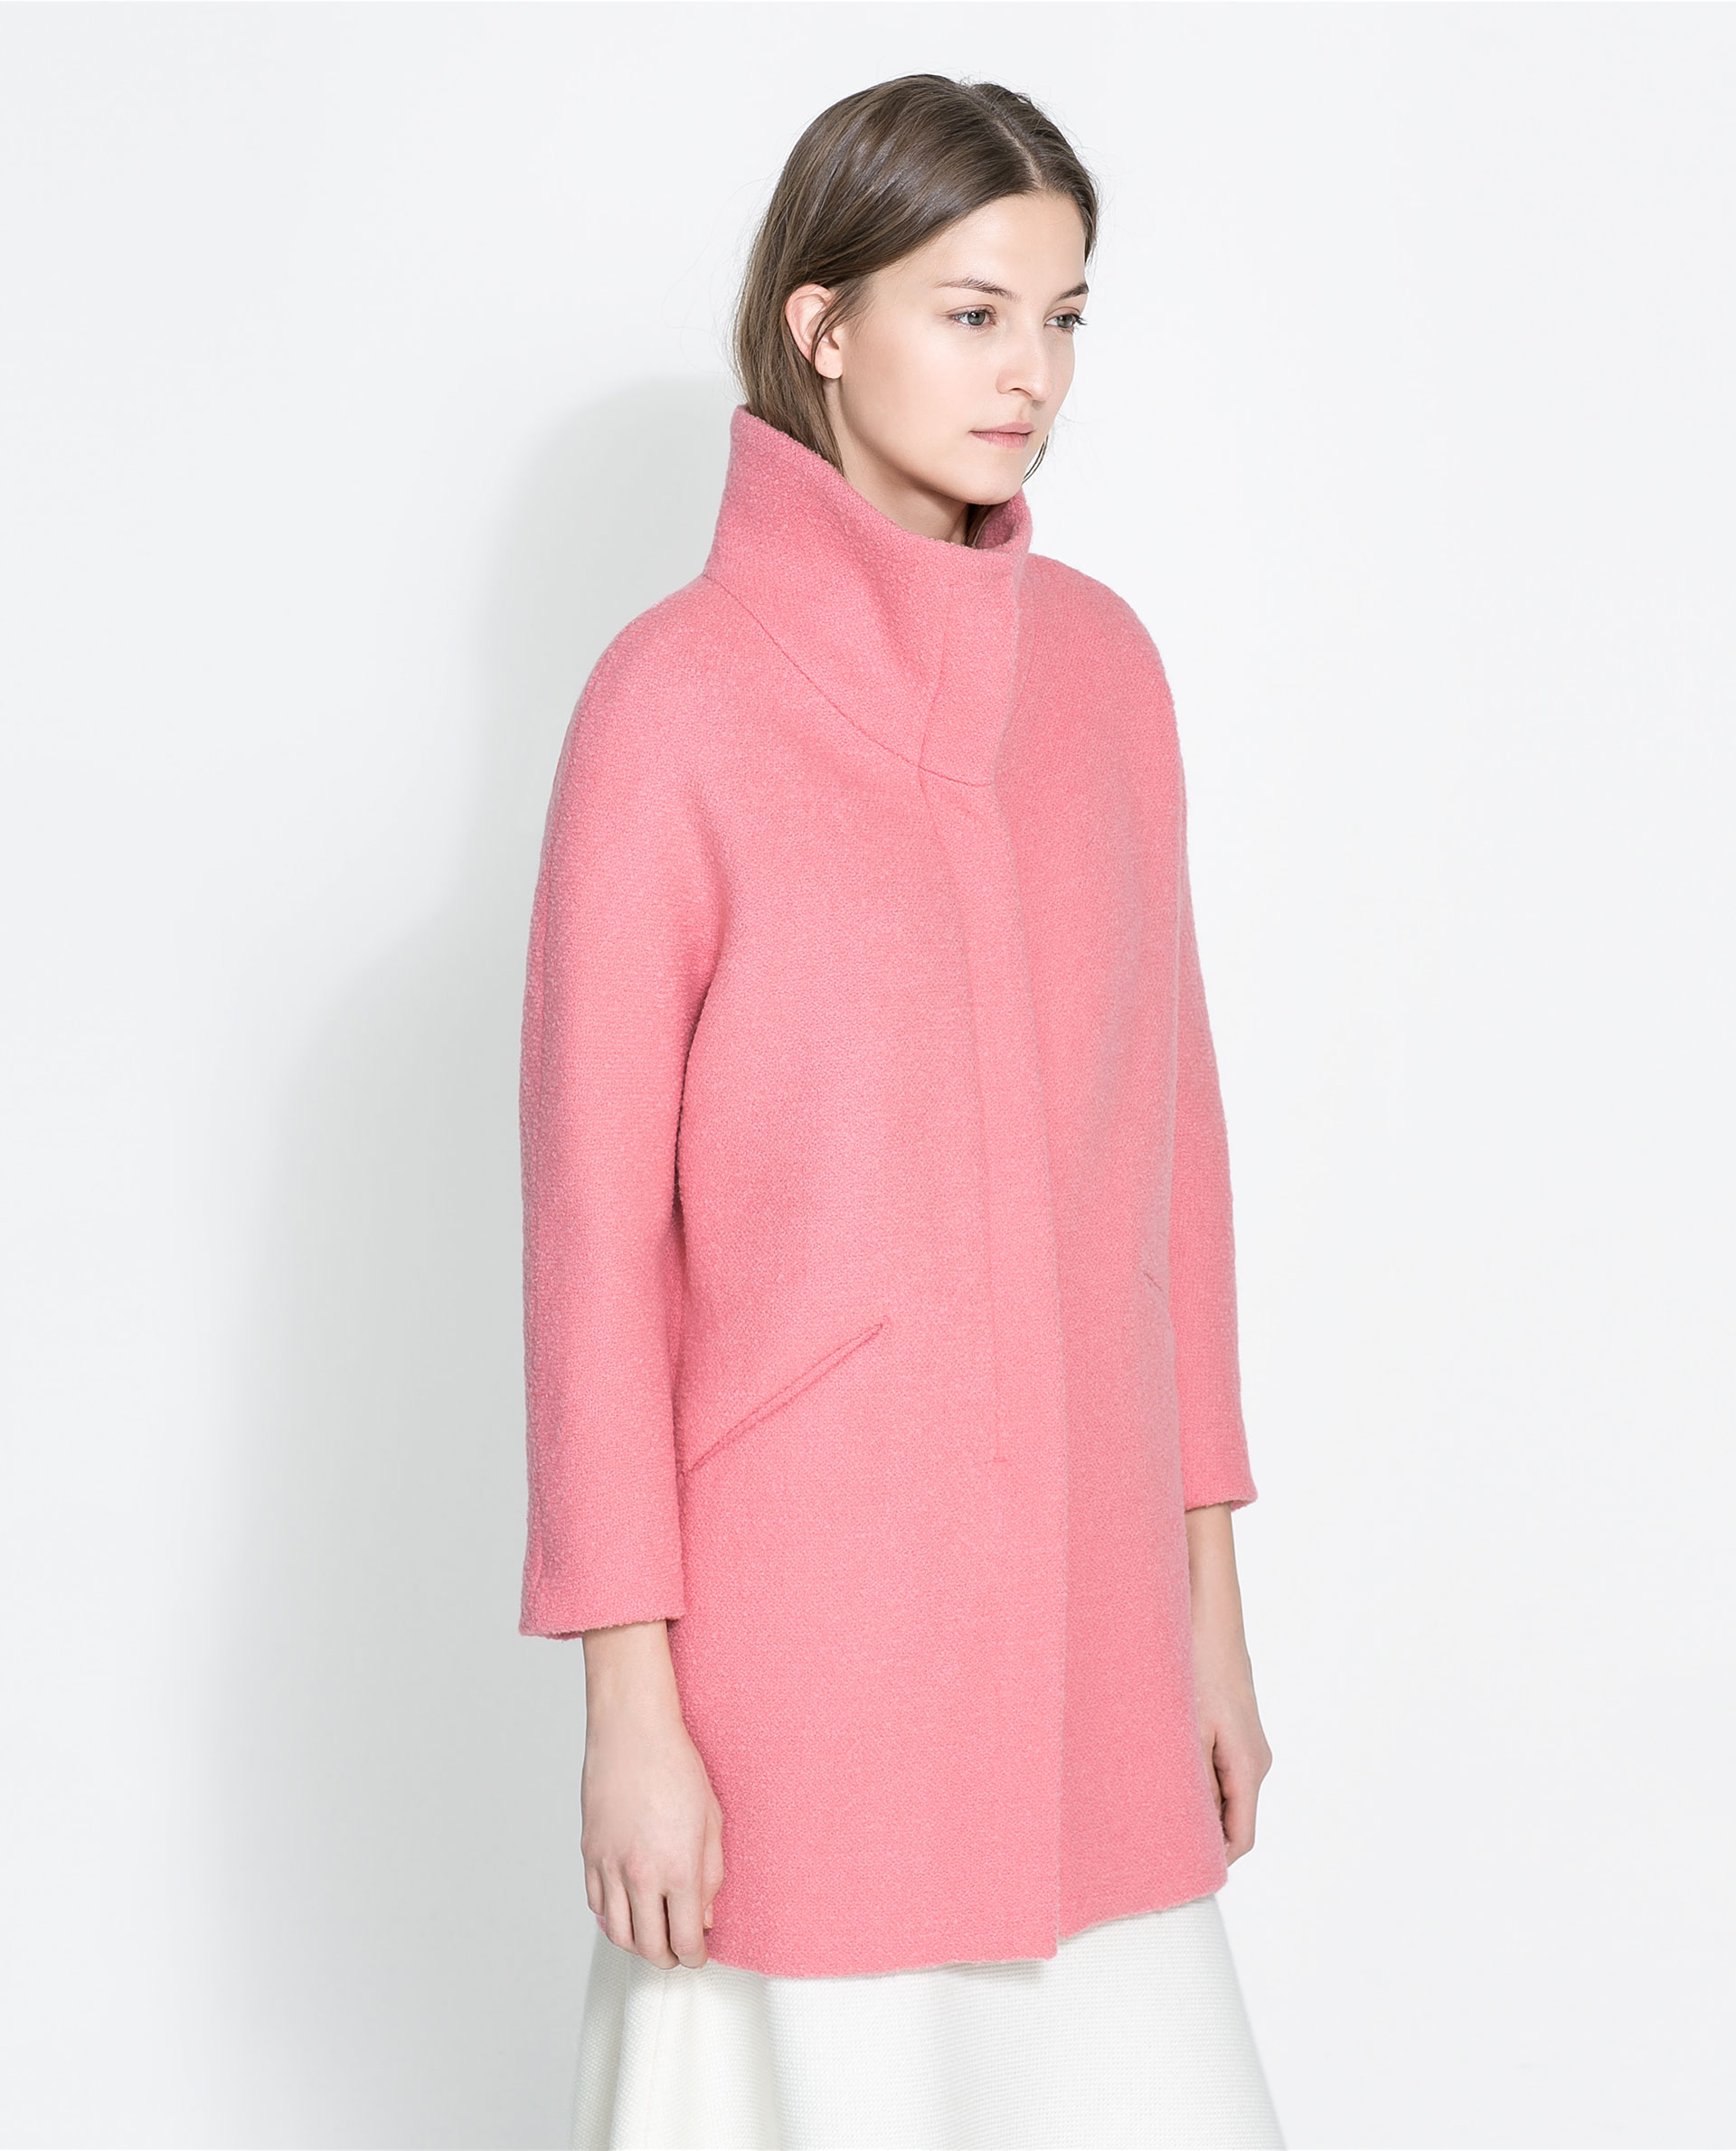 Images of Zara Pink Coat - Reikian